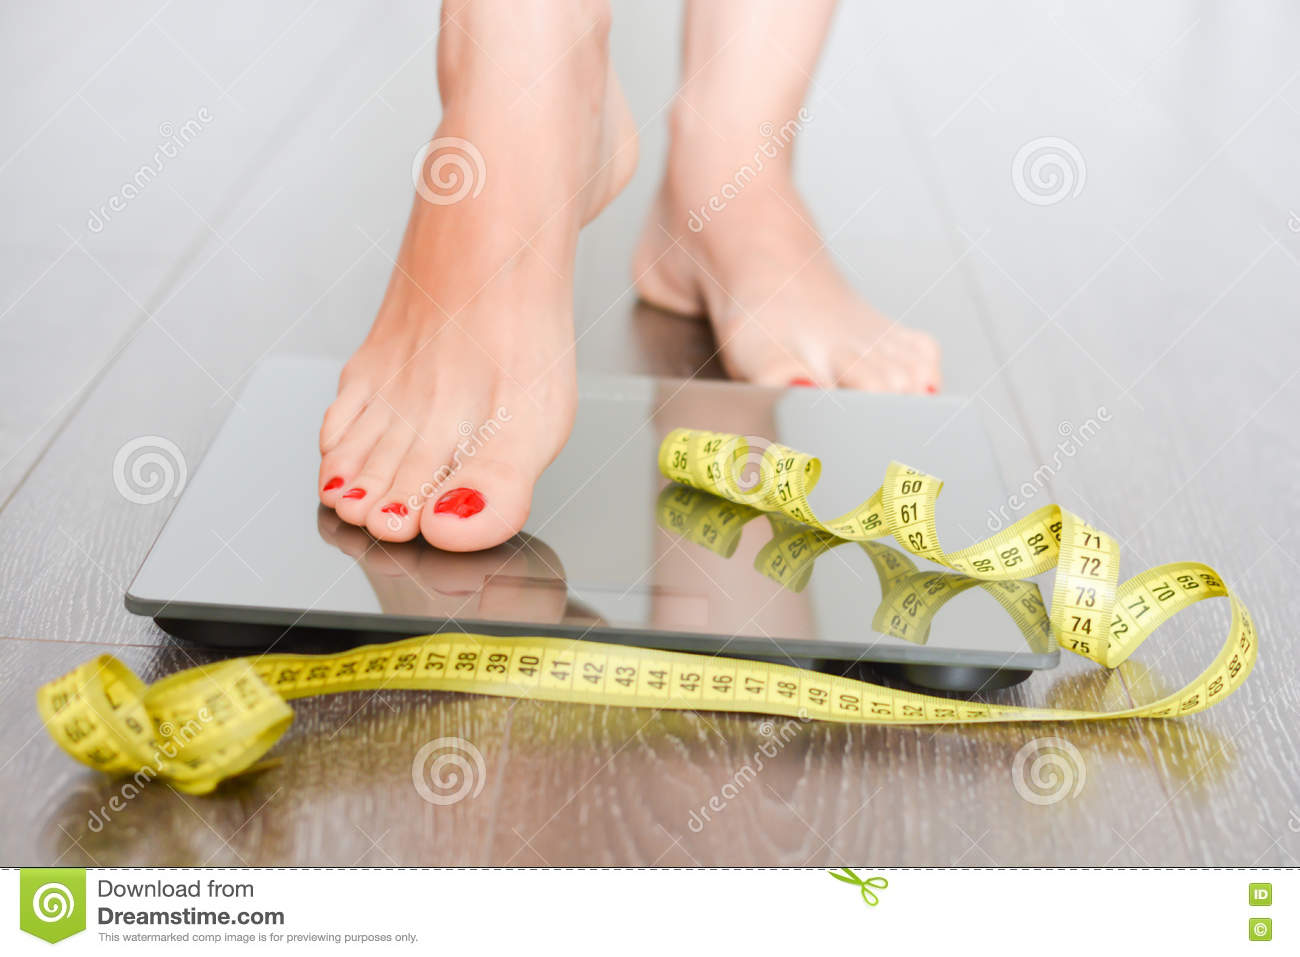 Time to lose kilograms with woman feet stepping on a weight scale